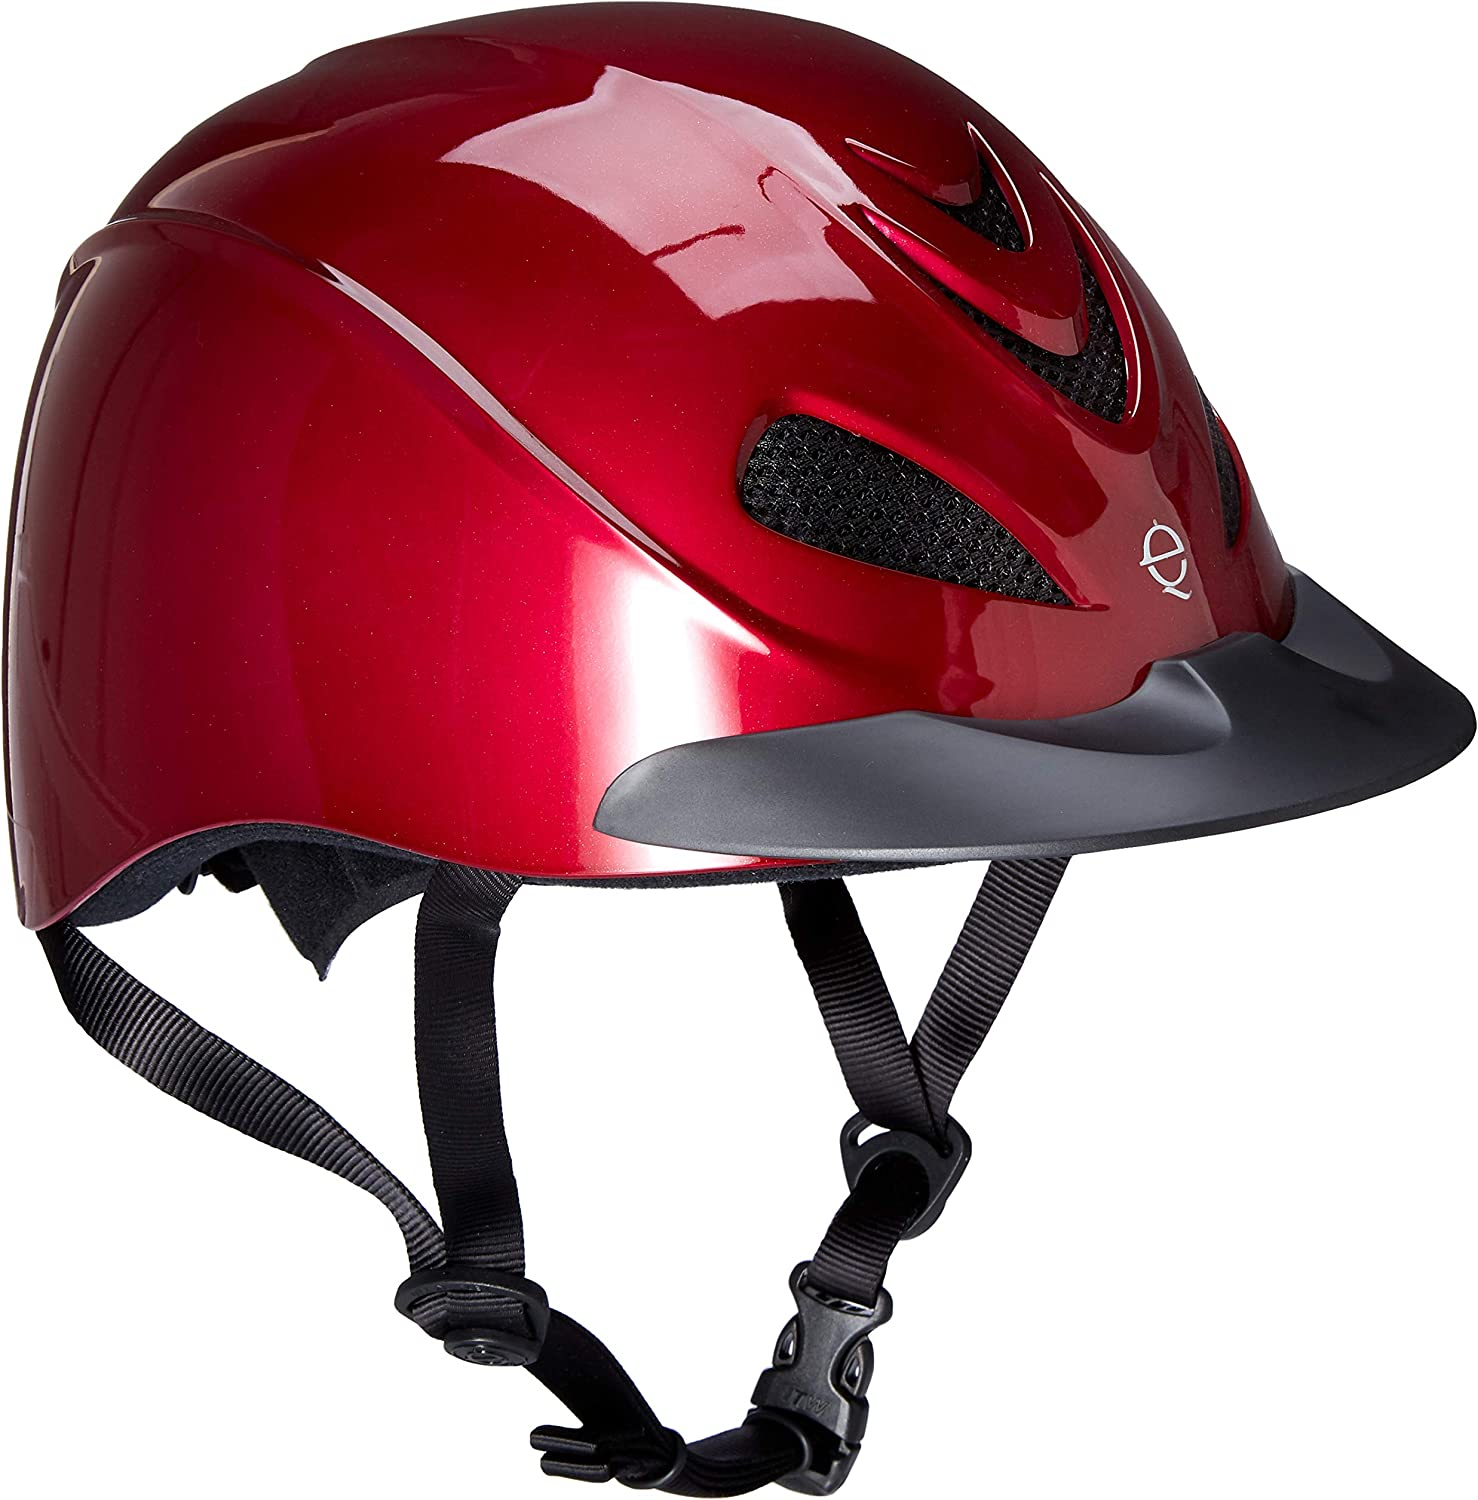 TROXEL LIBERTY BLACK DURATEC WESTERN SAFETY HORSE RIDING HELMET LOW PROFILE